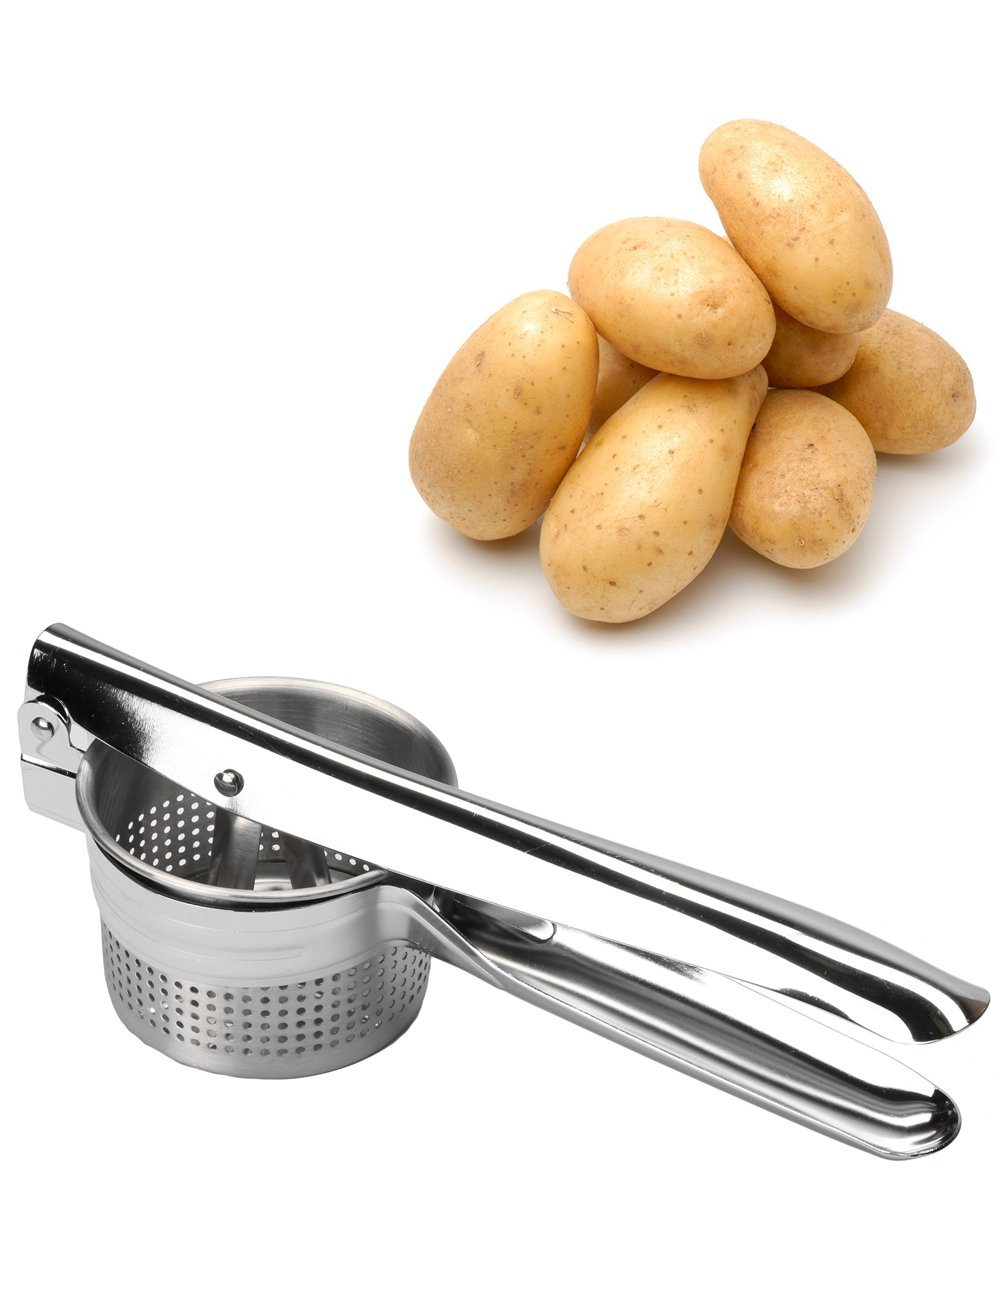 Golden Rule Potato Ricer and Masher Stainless Steel Heavy Duty Food Presser for Potatoes Pumpkin Lemon Fruit Juice